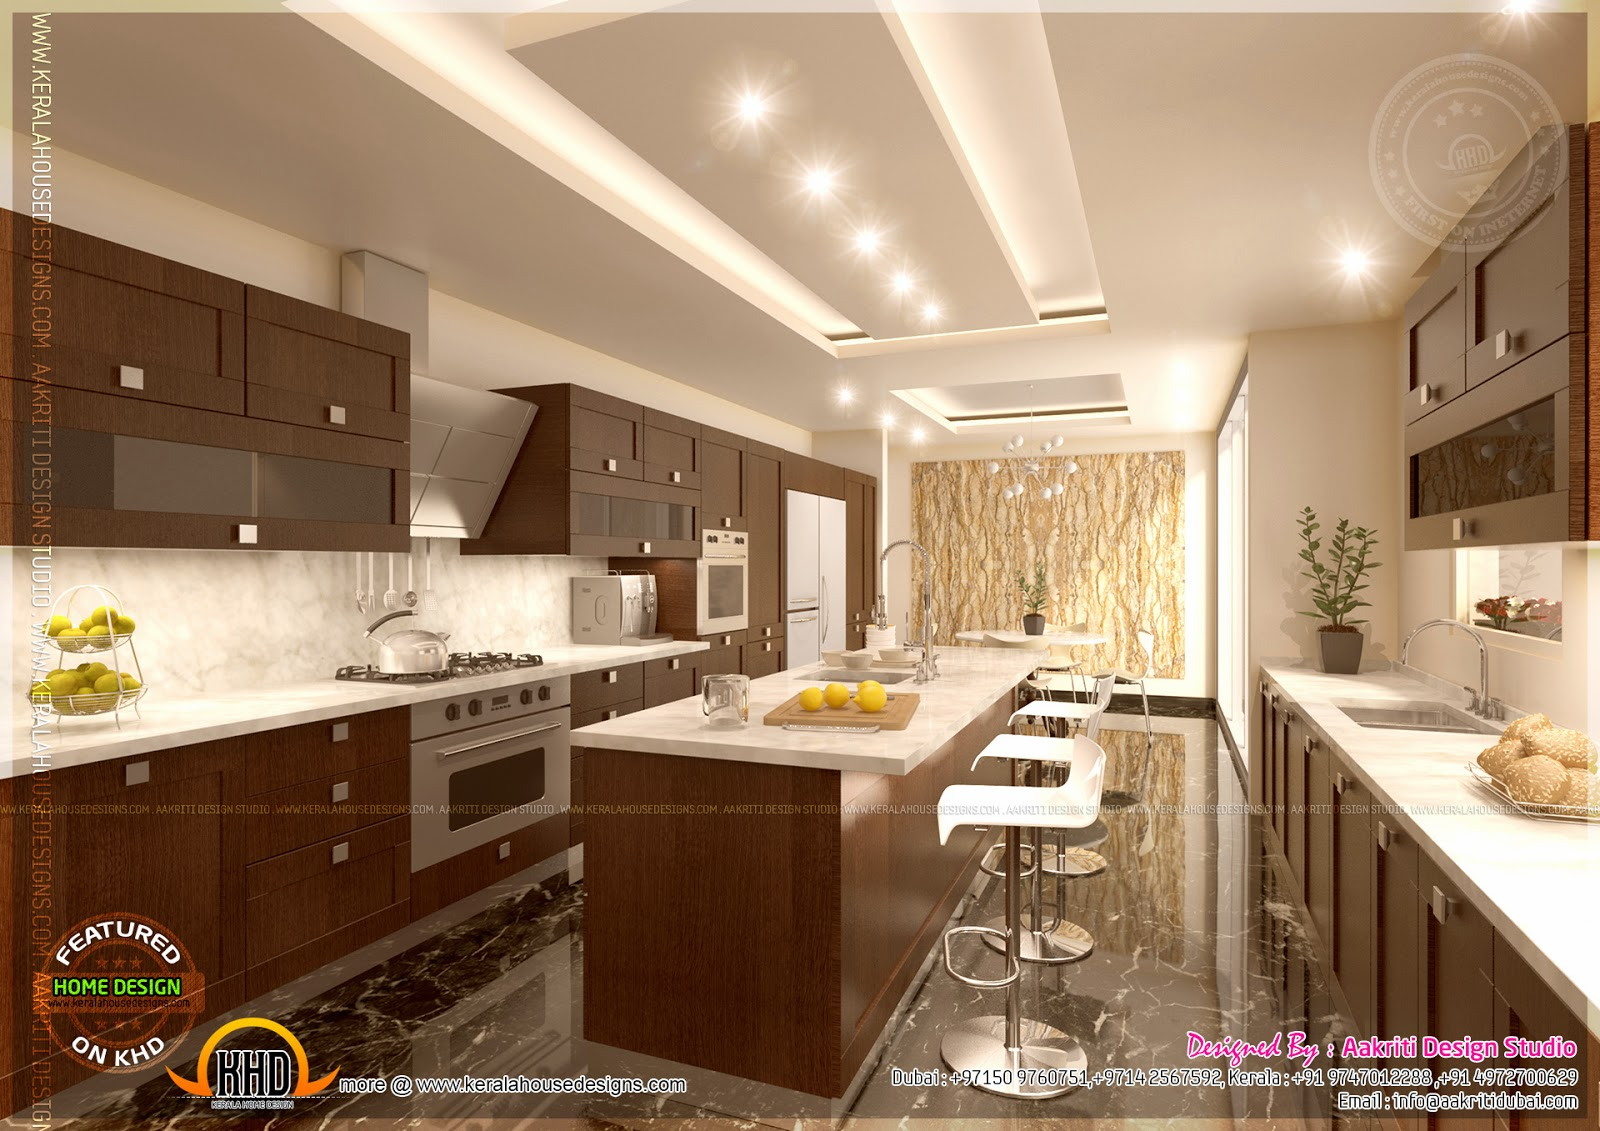 Kitchen designs by aakriti design studio kerala home design and floor plans Good kitchen design images